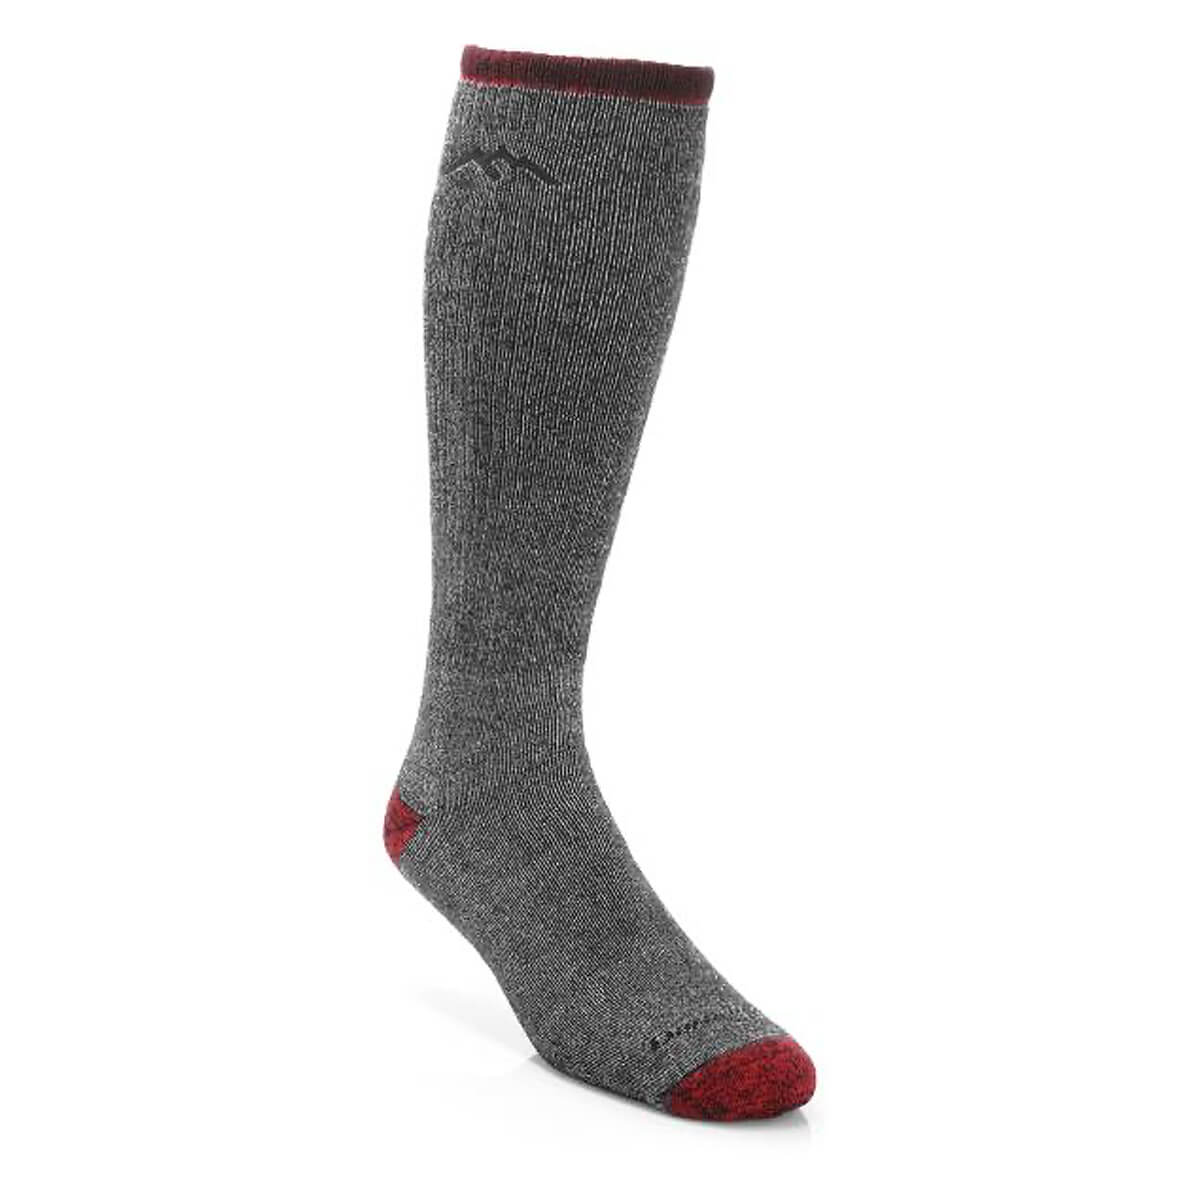 Darn Tough Mountaineering Socks